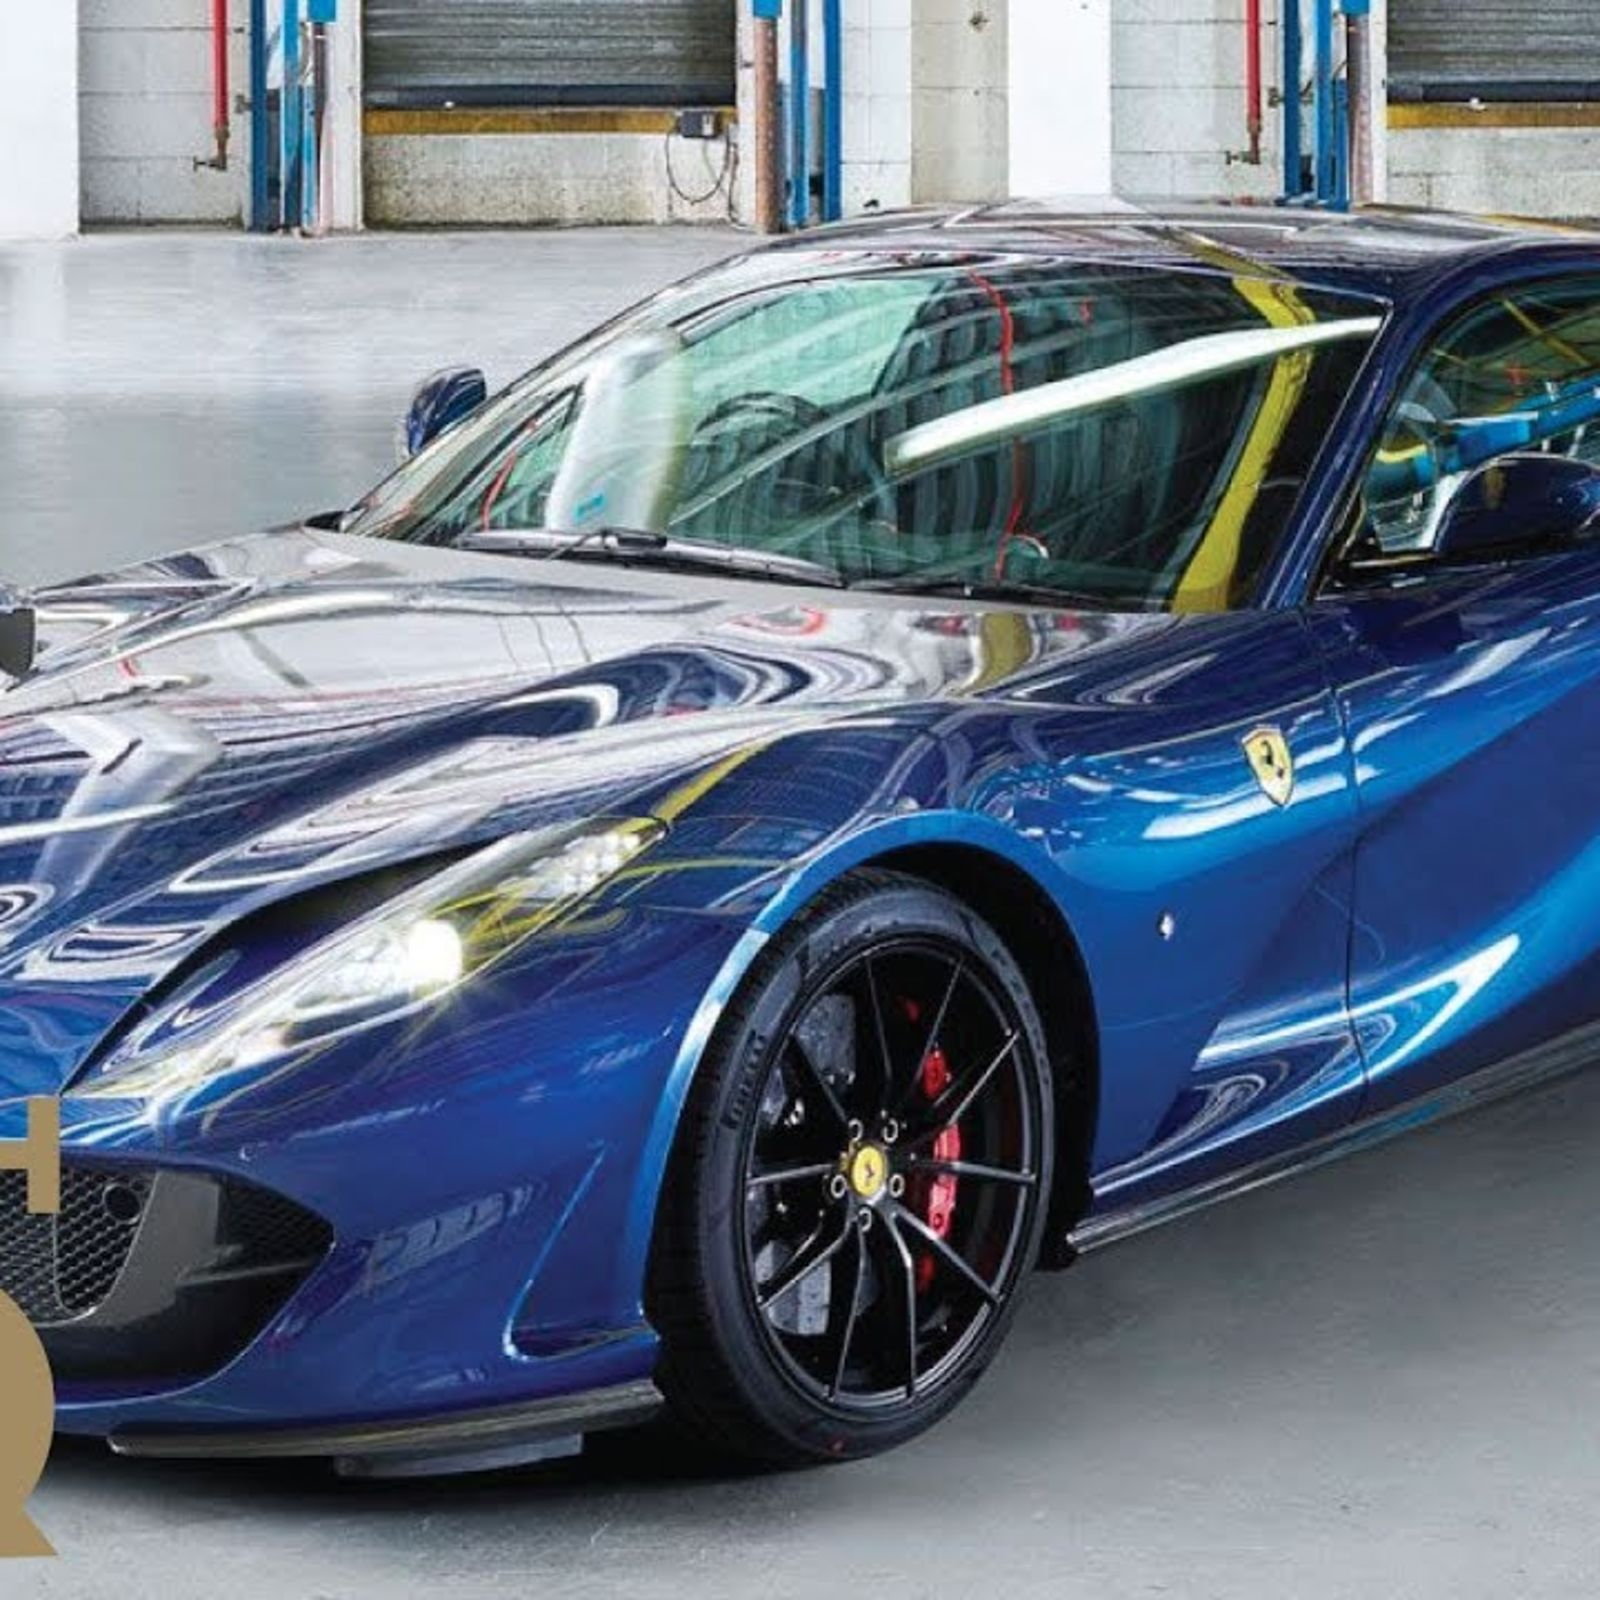 Ferrari 812 Superfast review: its 6.5-litre V12 is a masterpiece